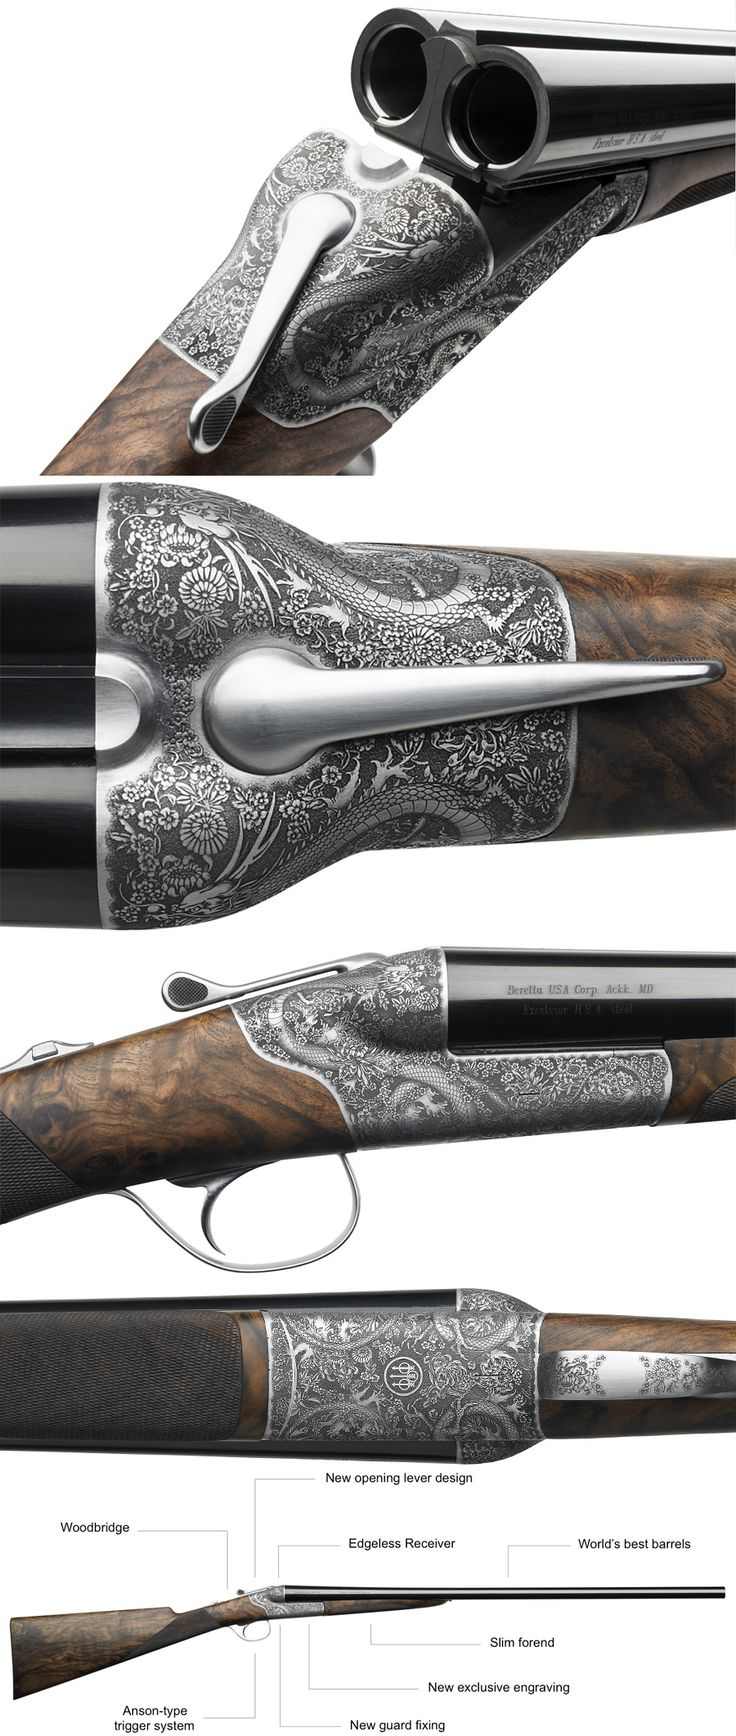 Beretta unveiled the 486 by Marc Newson, based on their 486 Parallelo, at a London event and the new side-by-side is nothing short of a masterpiece.